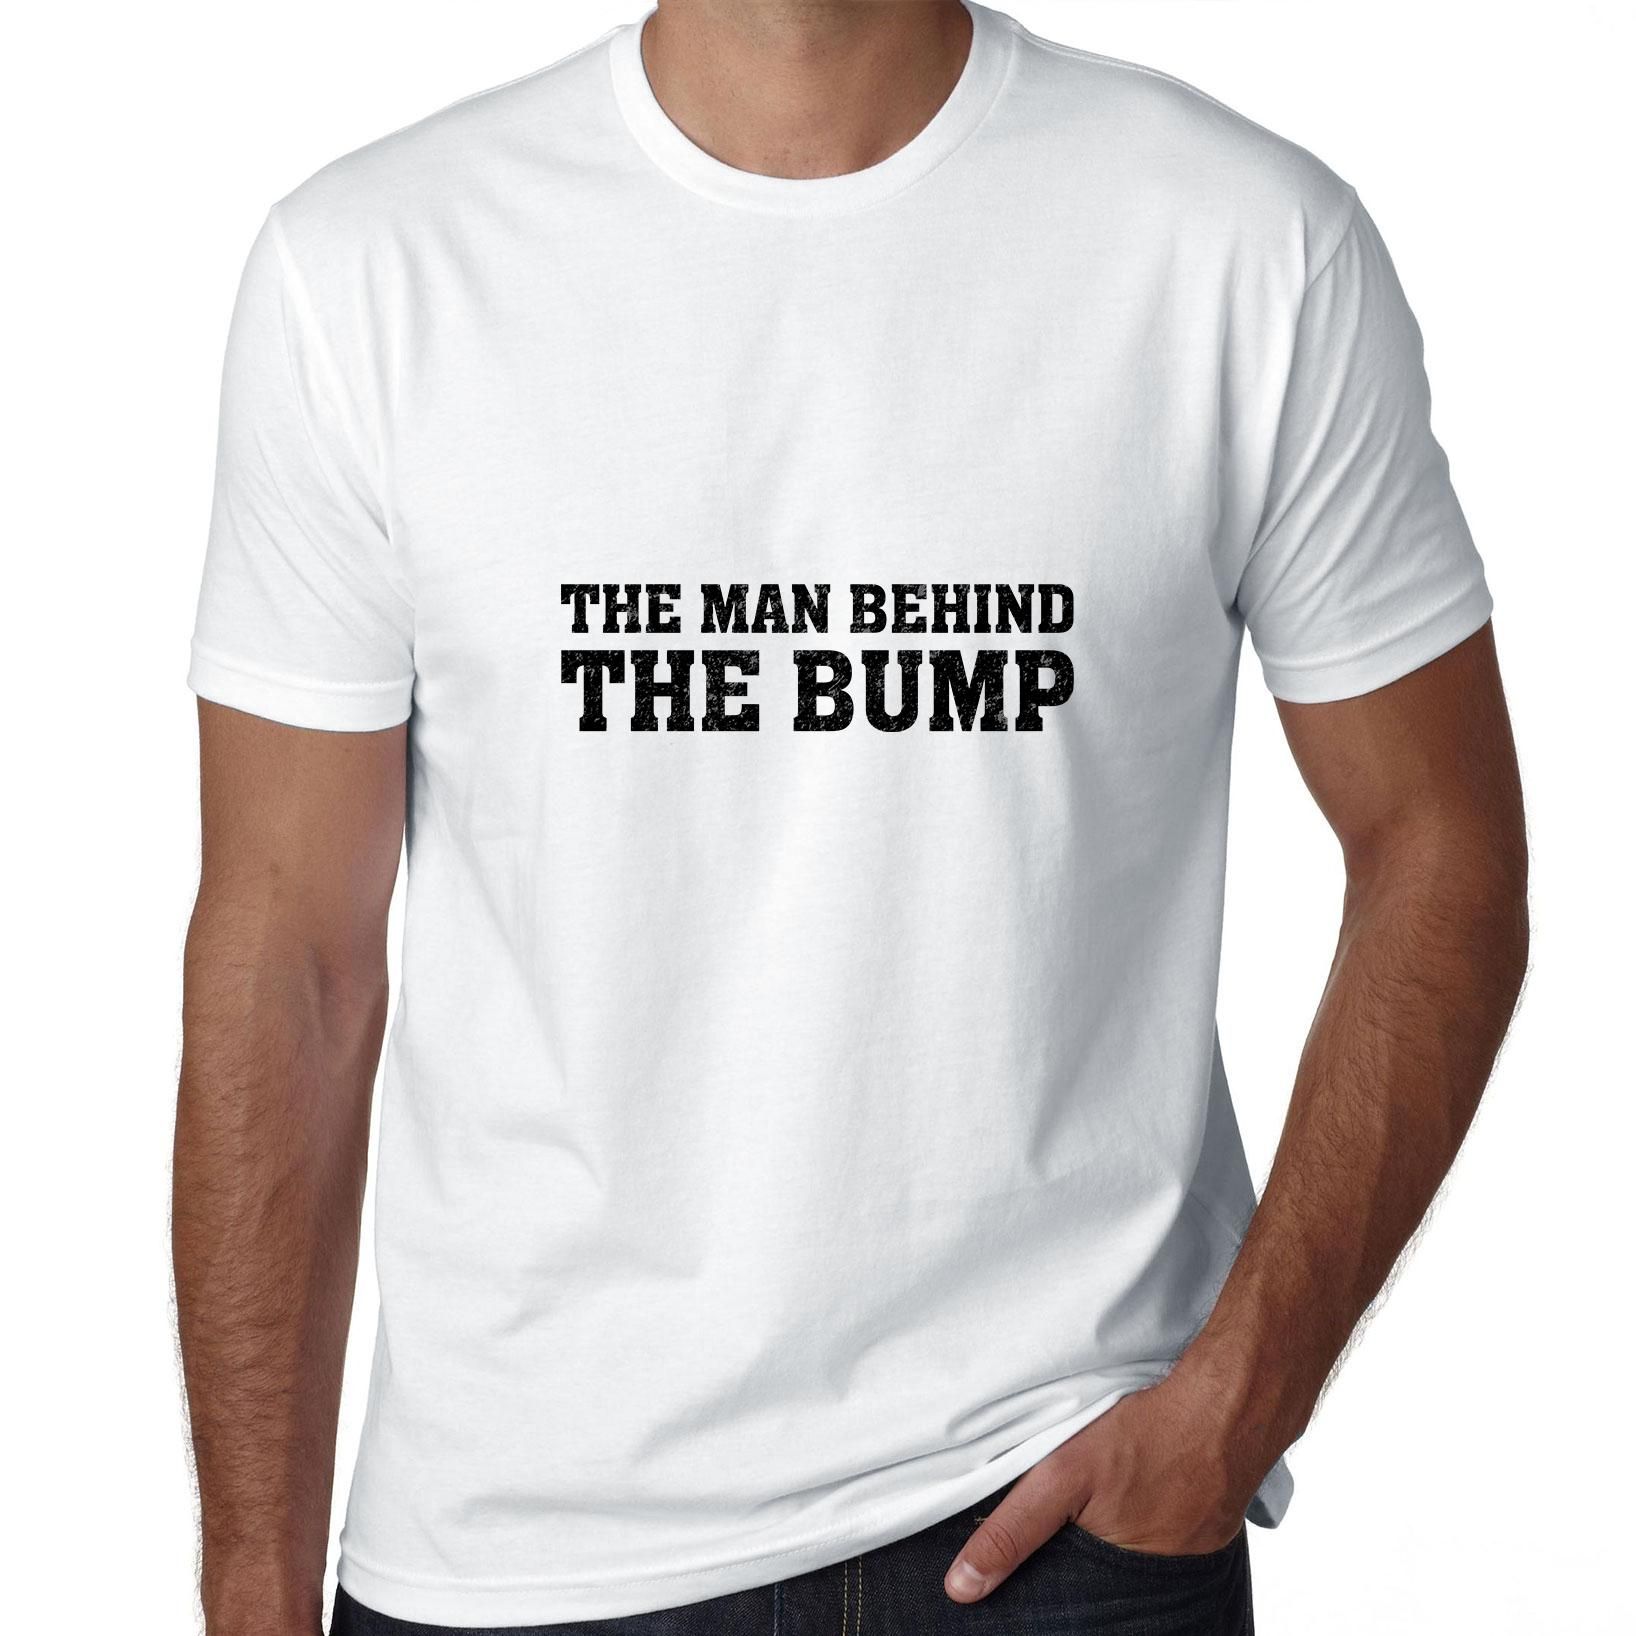 The Man Behind The Bump - Expecting Father Funny Men's T-Shirt